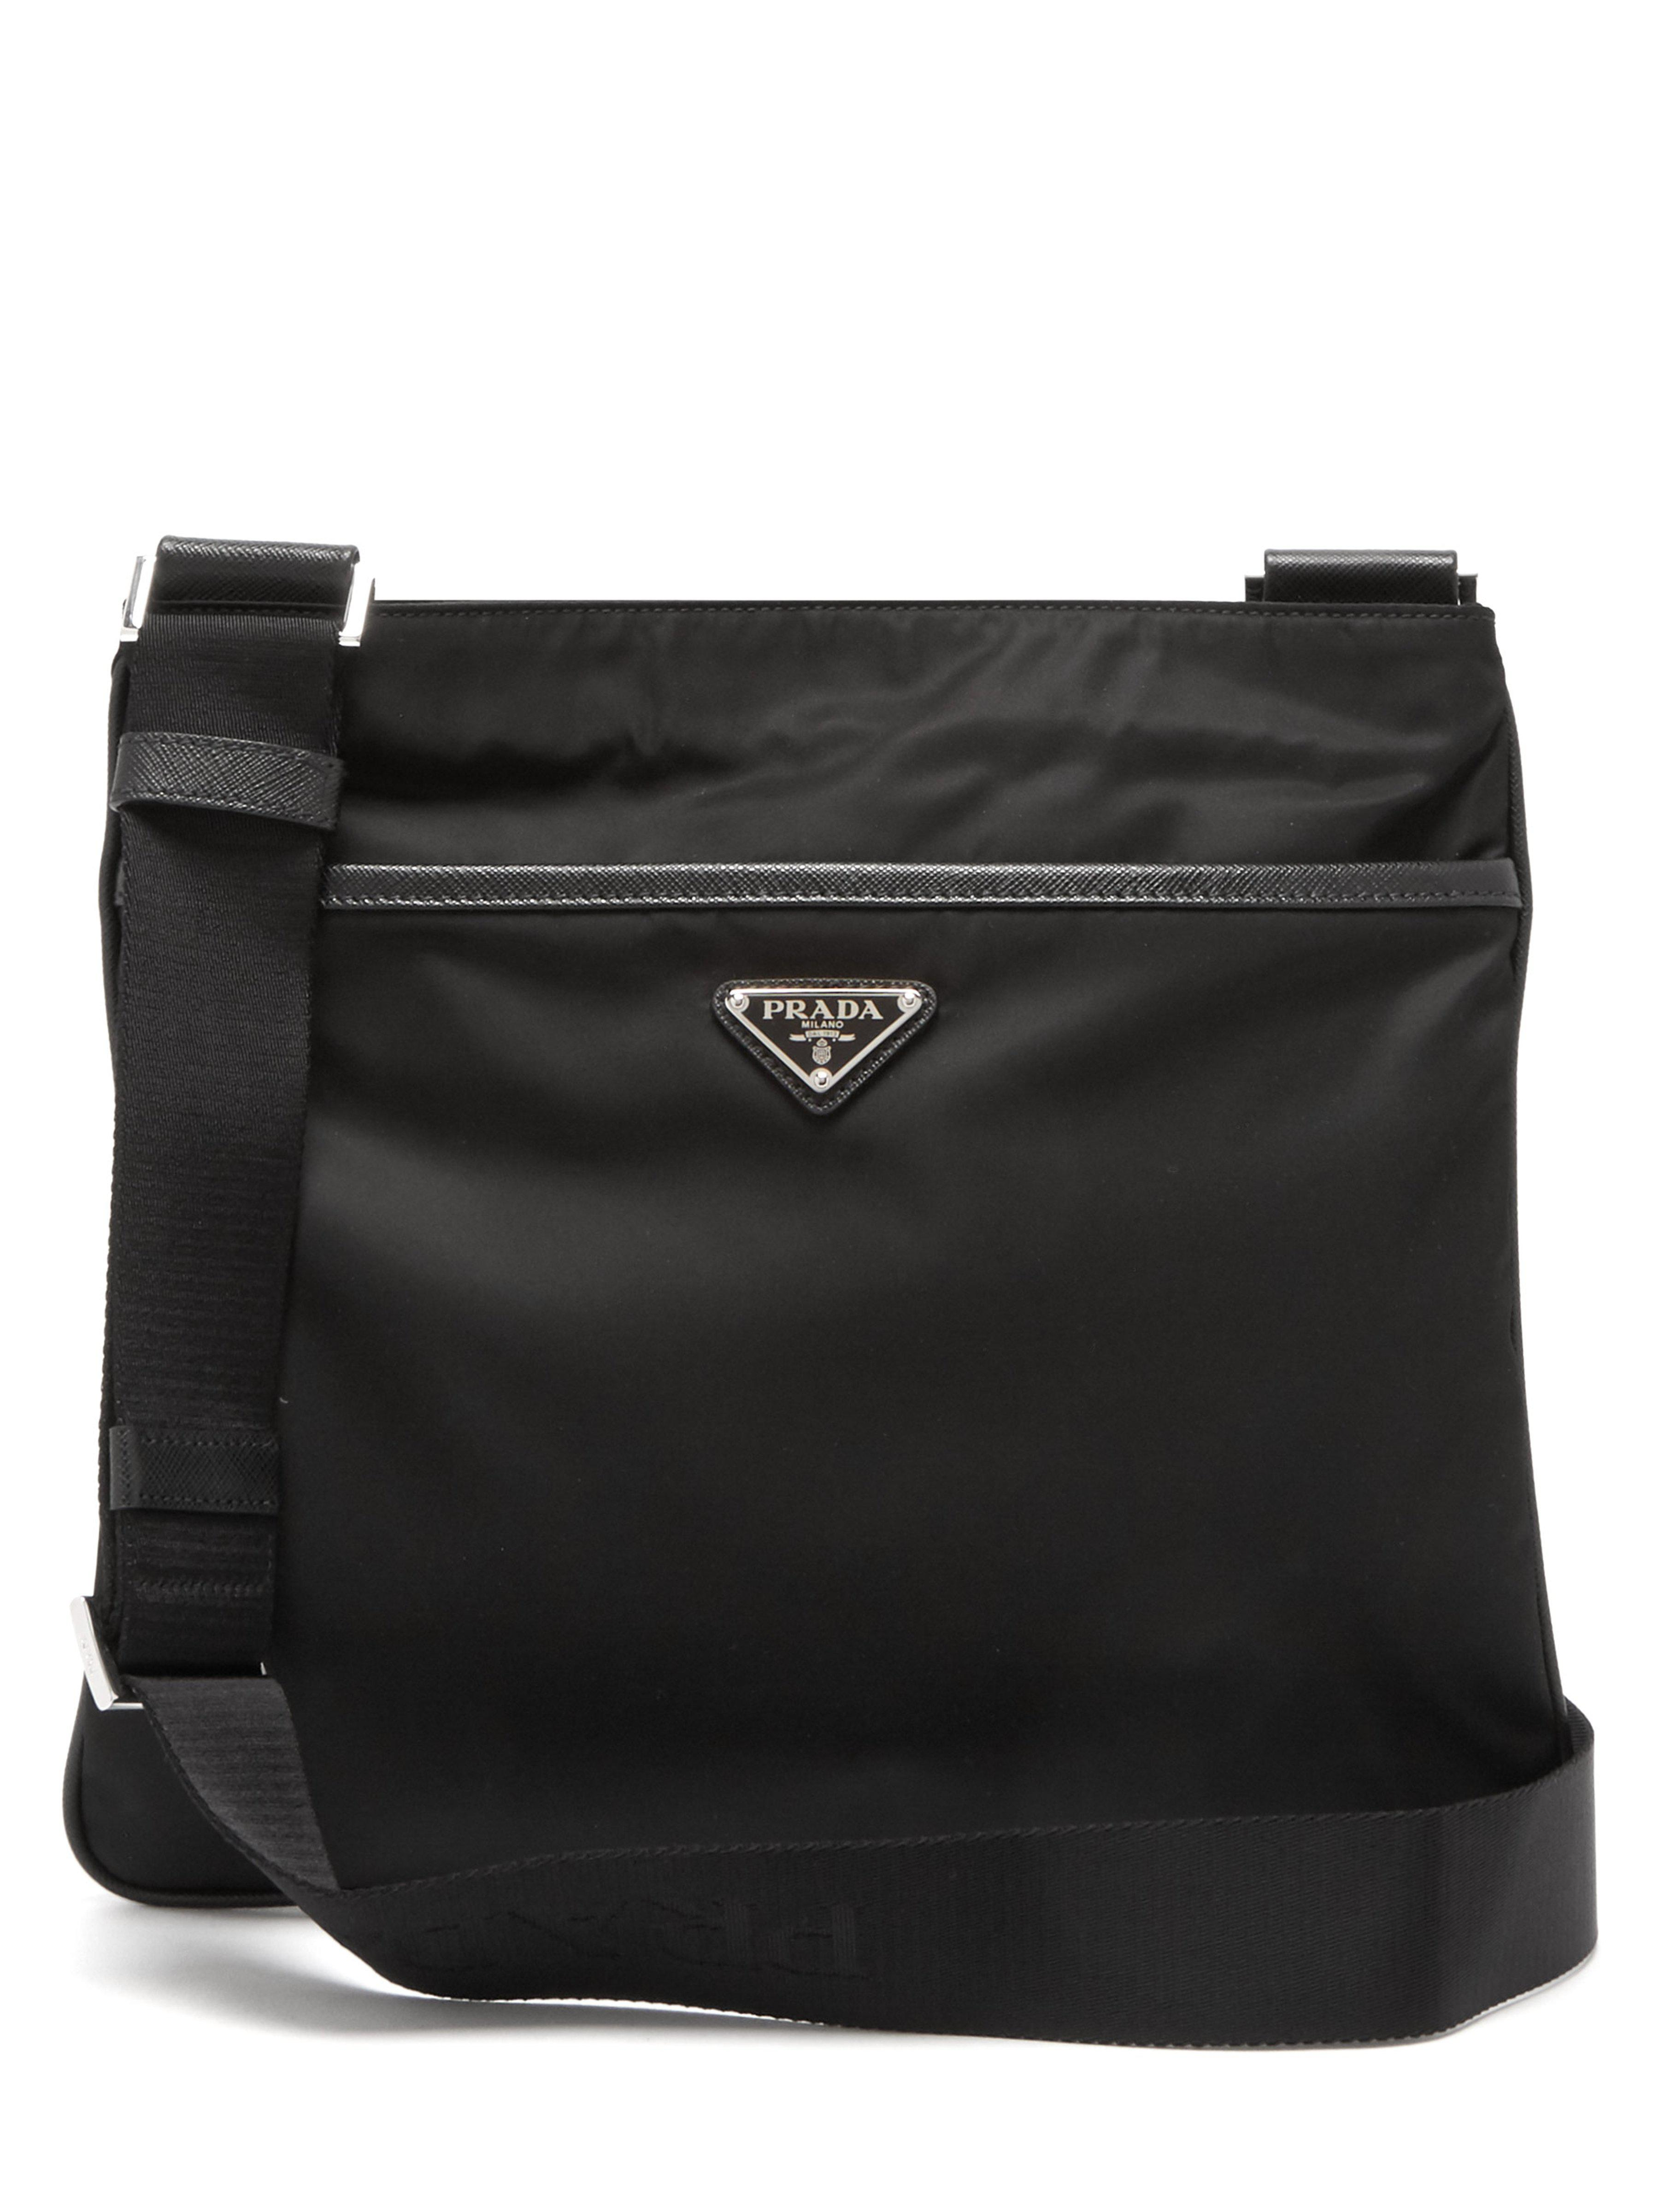 0f24d4dad53c Prada - Black Logo Messenger Bag for Men - Lyst. View fullscreen